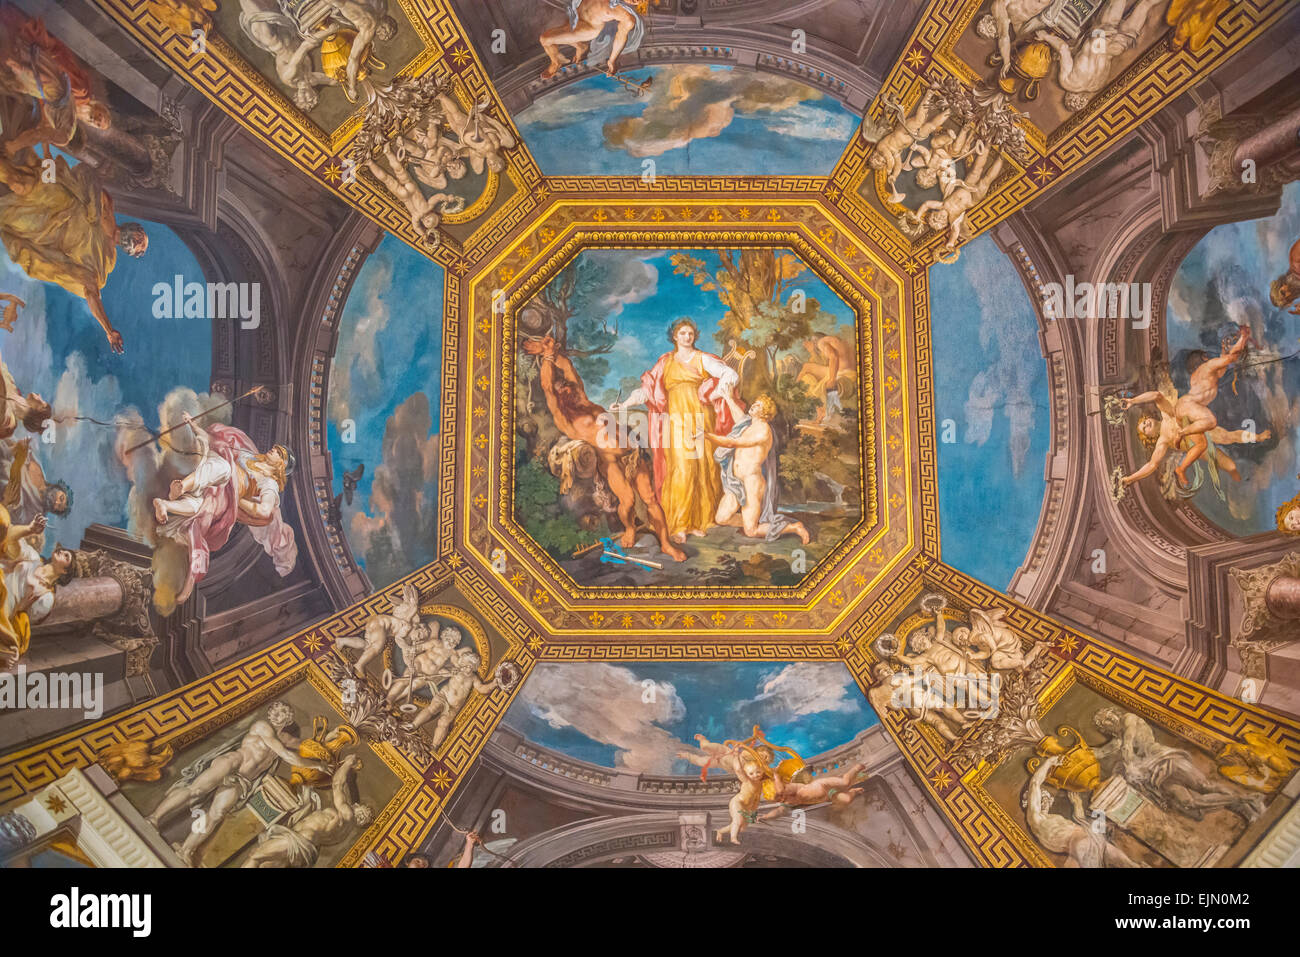 Ceiling fresco, Apollo and the Muses by Tommaso Conca, 1782-1787, Sala delle Muse, room of the Muses, Vatican Museums, - Stock Image